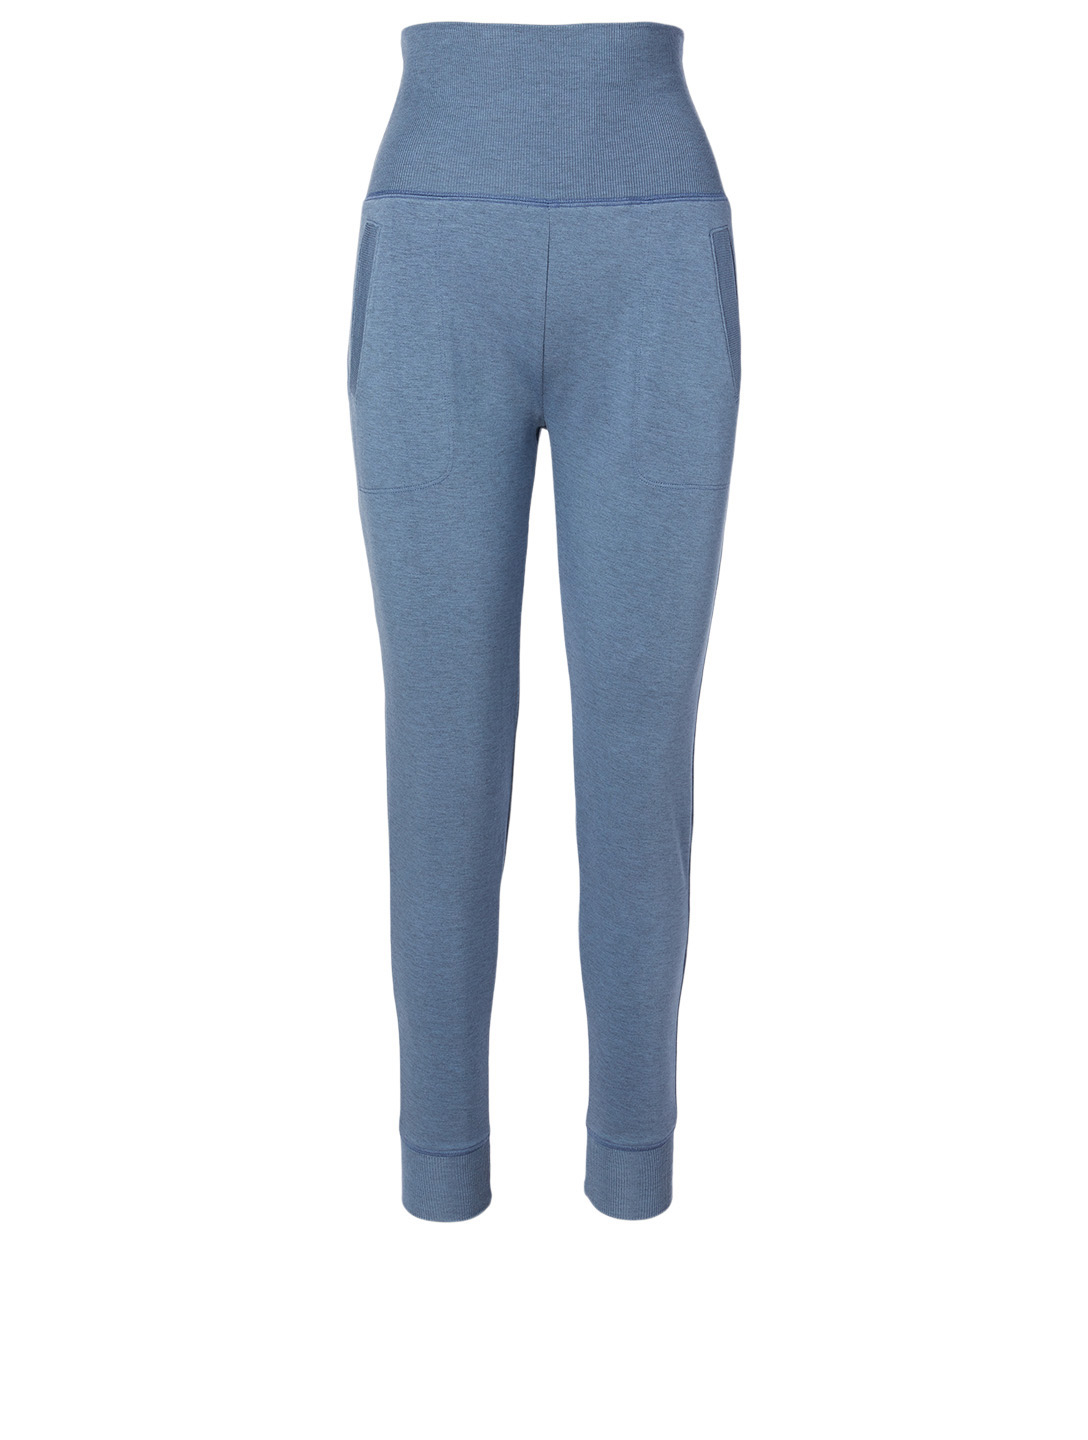 BEYOND YOGA Fleece Foldover Sweatpants Women's Blue